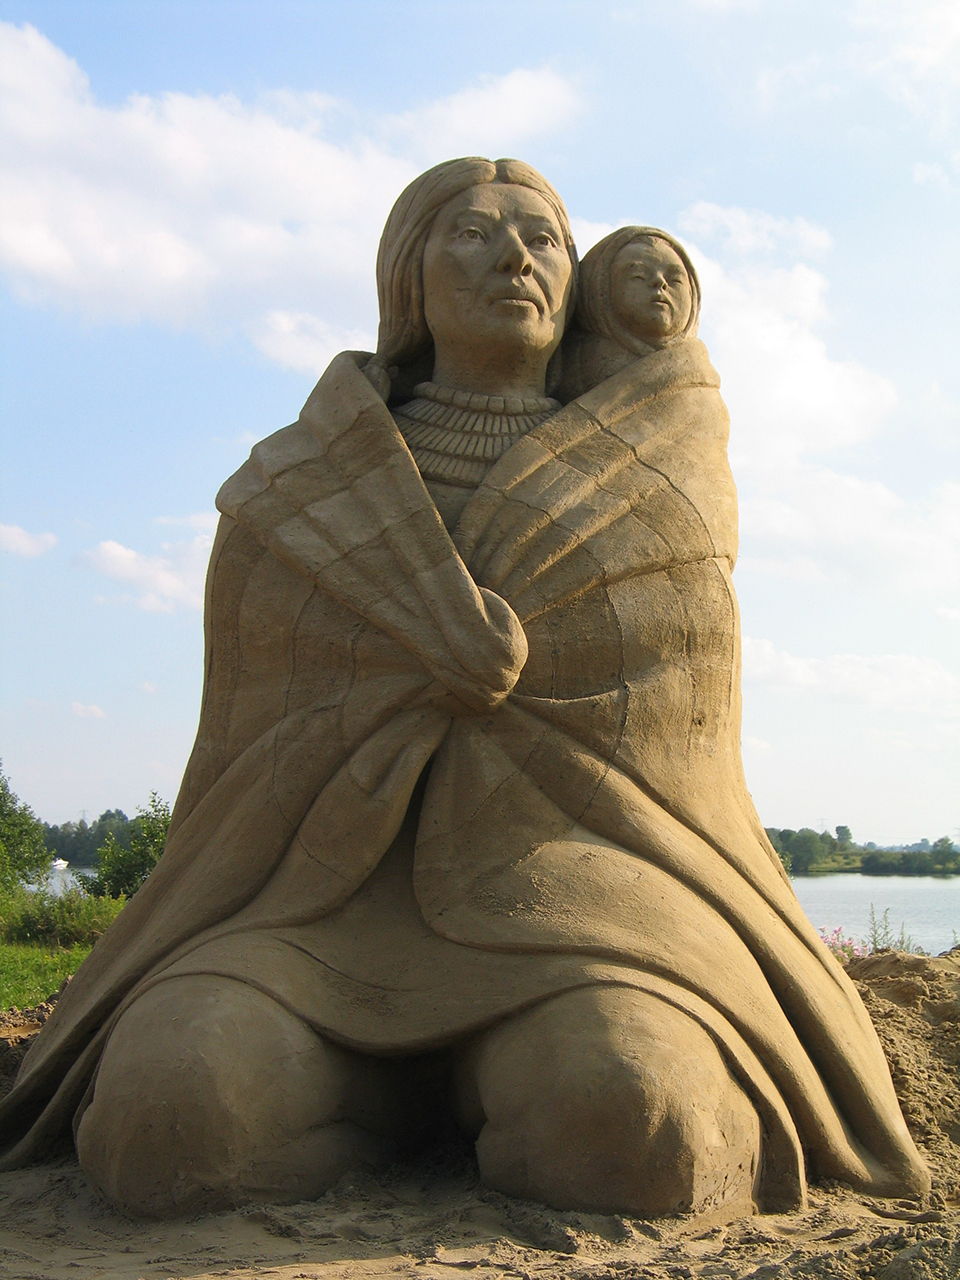 2970686939 47ed21858b o Amazing Sand Sculptures by Fergus Mulvany.